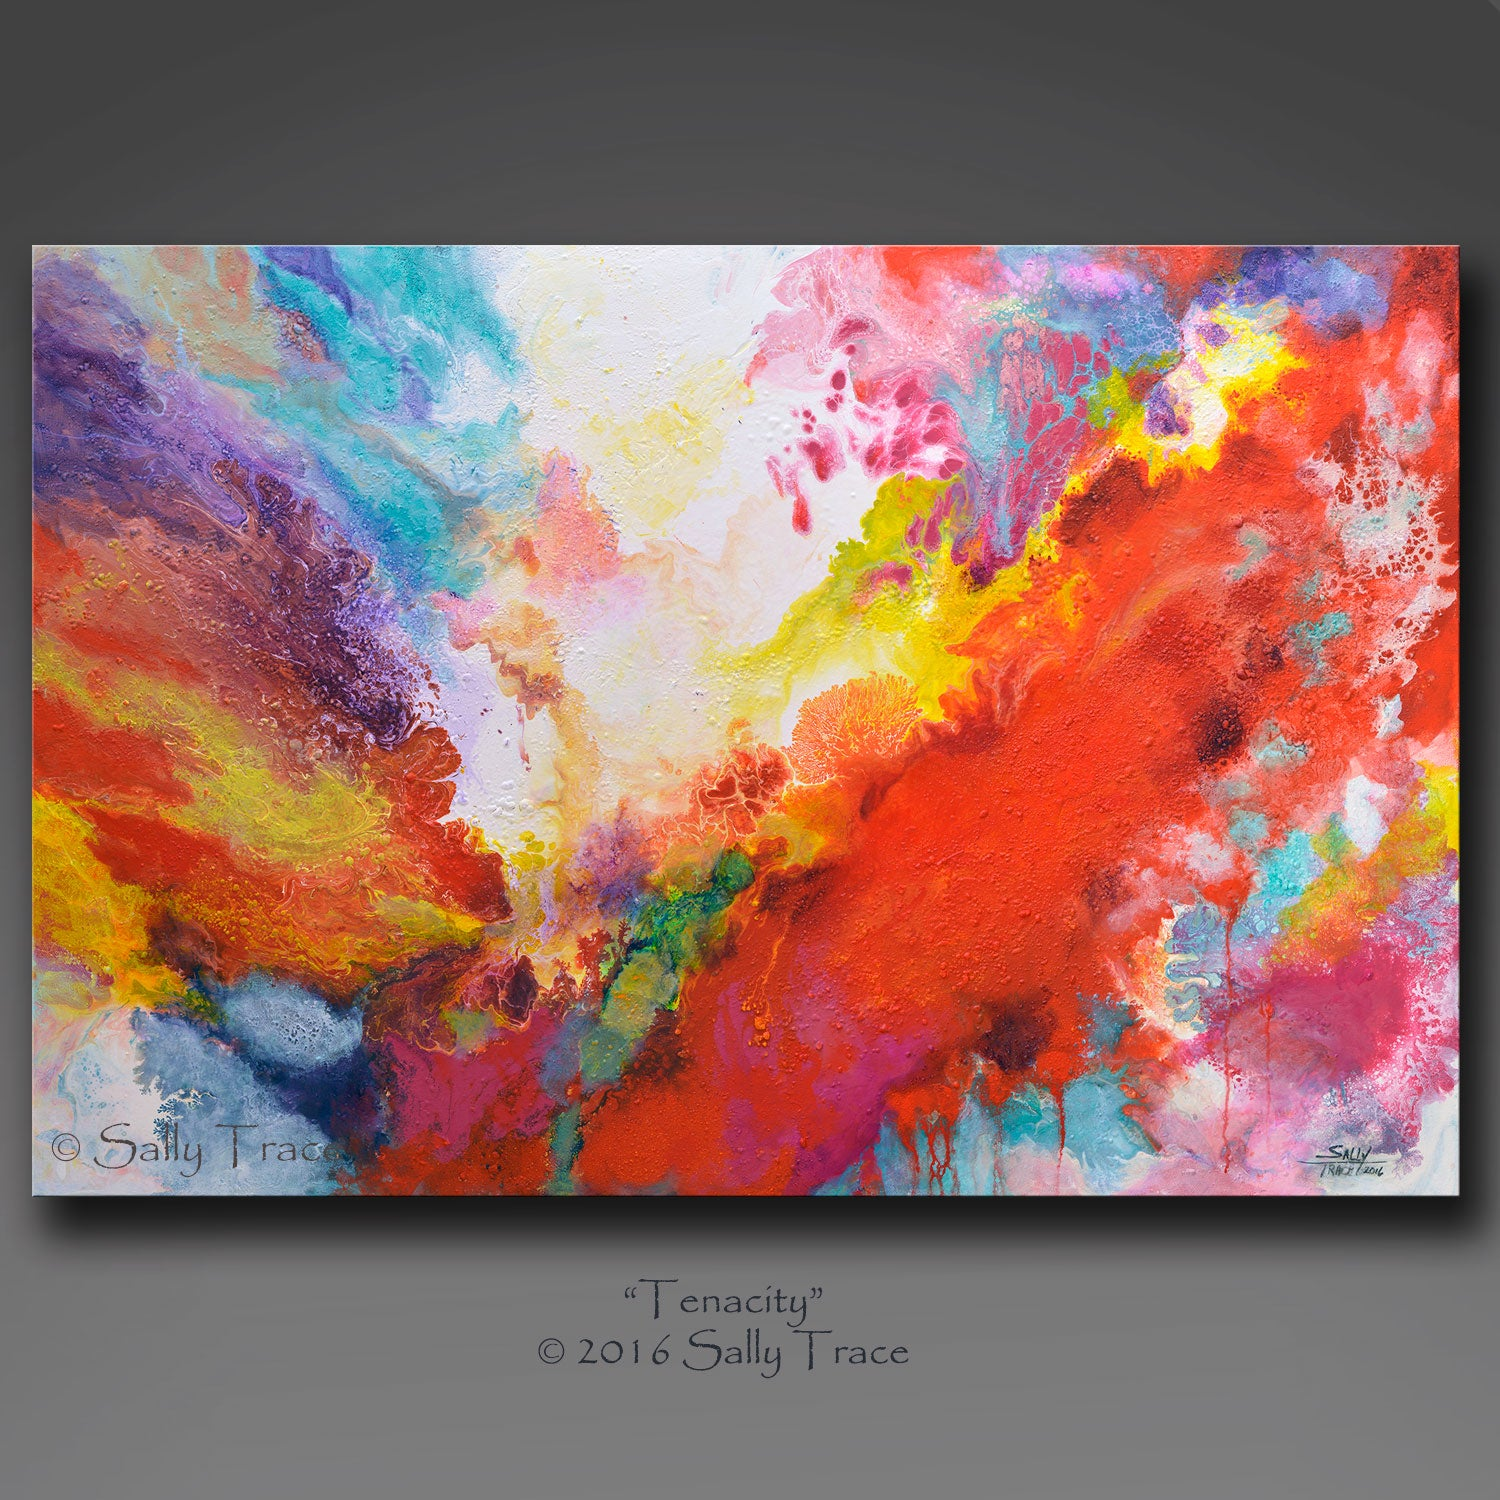 """Tenacity"" Giclee Prints from the Original Abstract Painting"